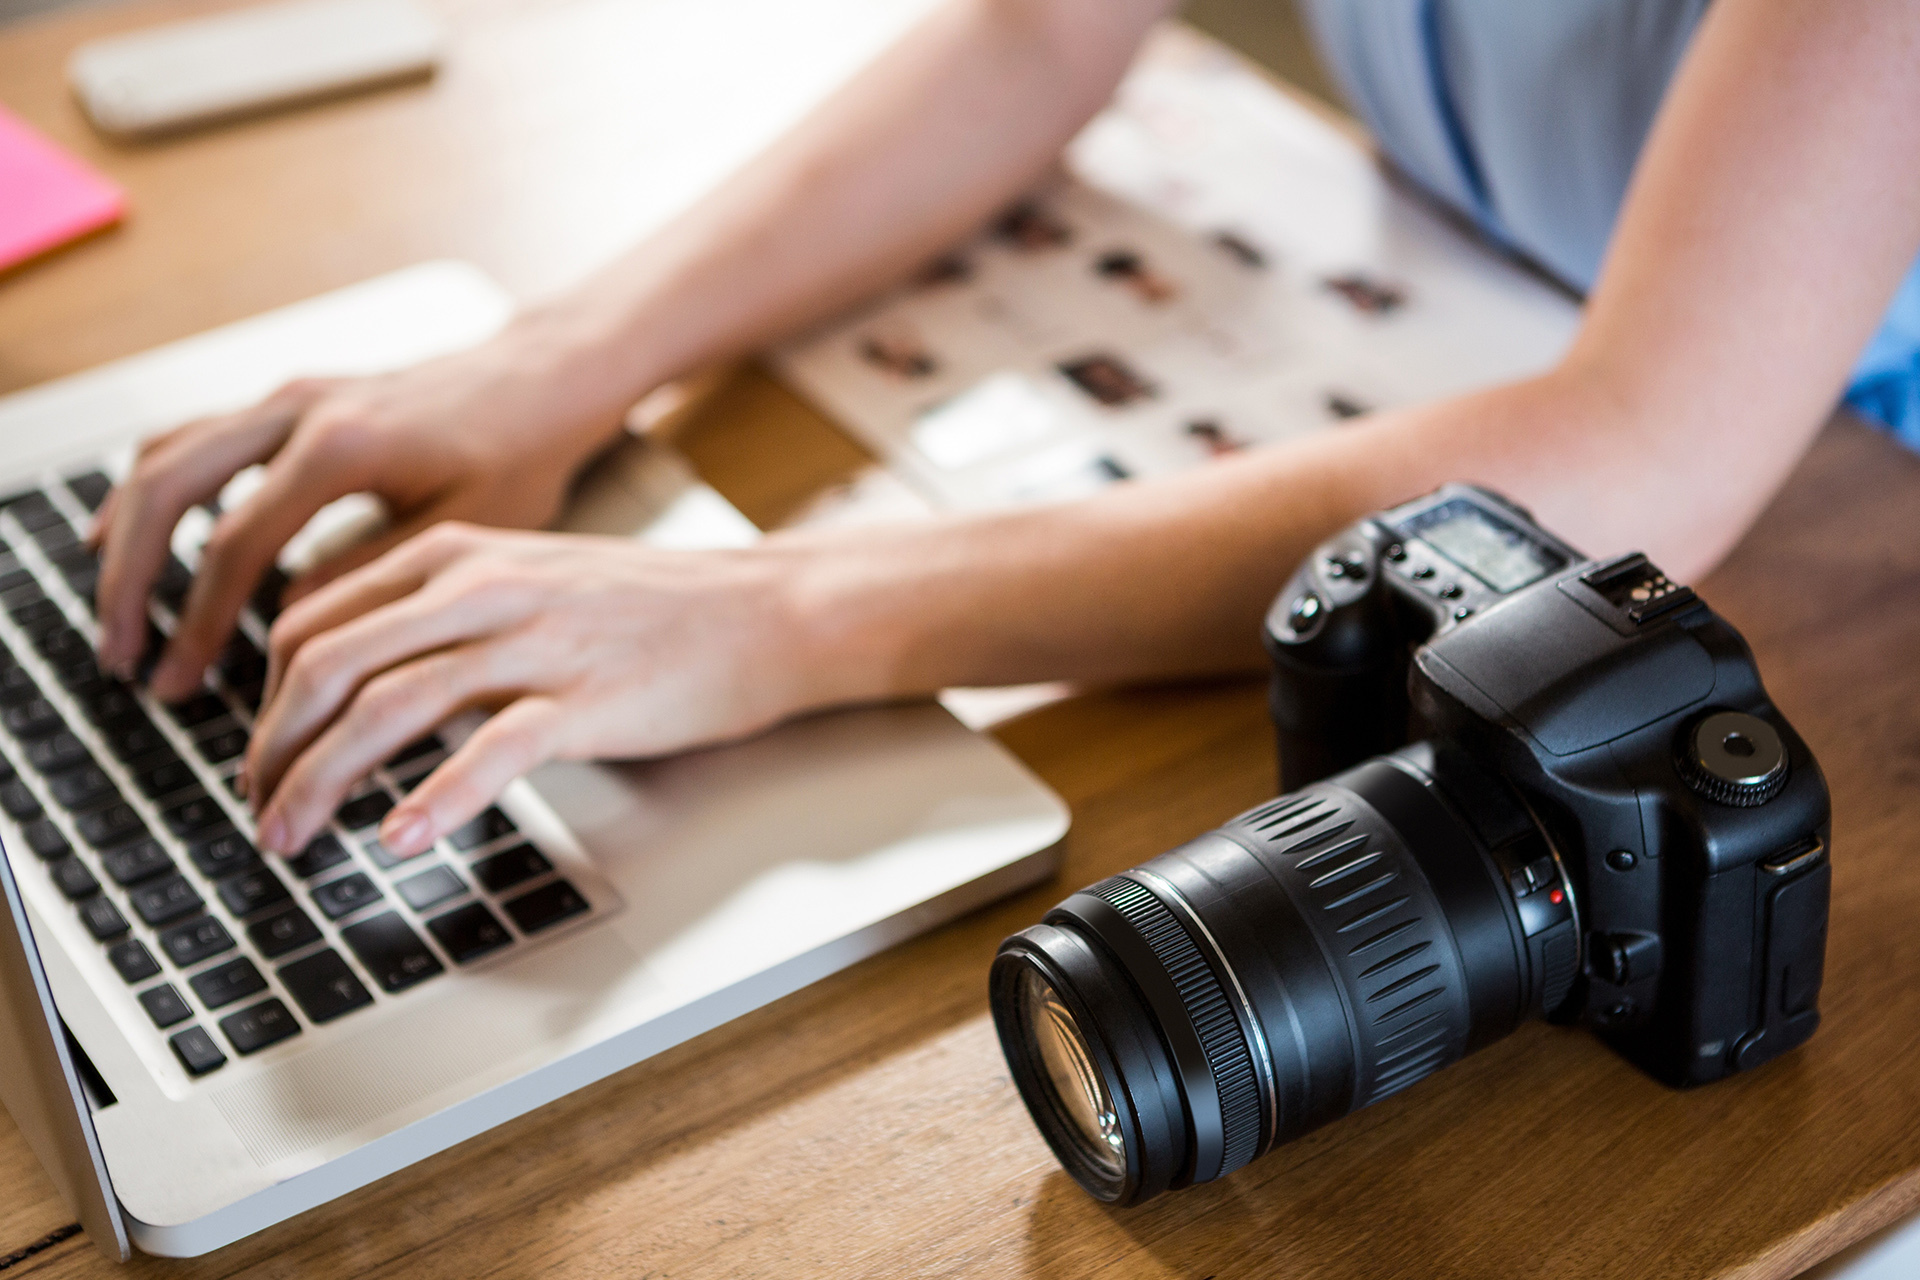 Tips on How to Find Your Editing Style